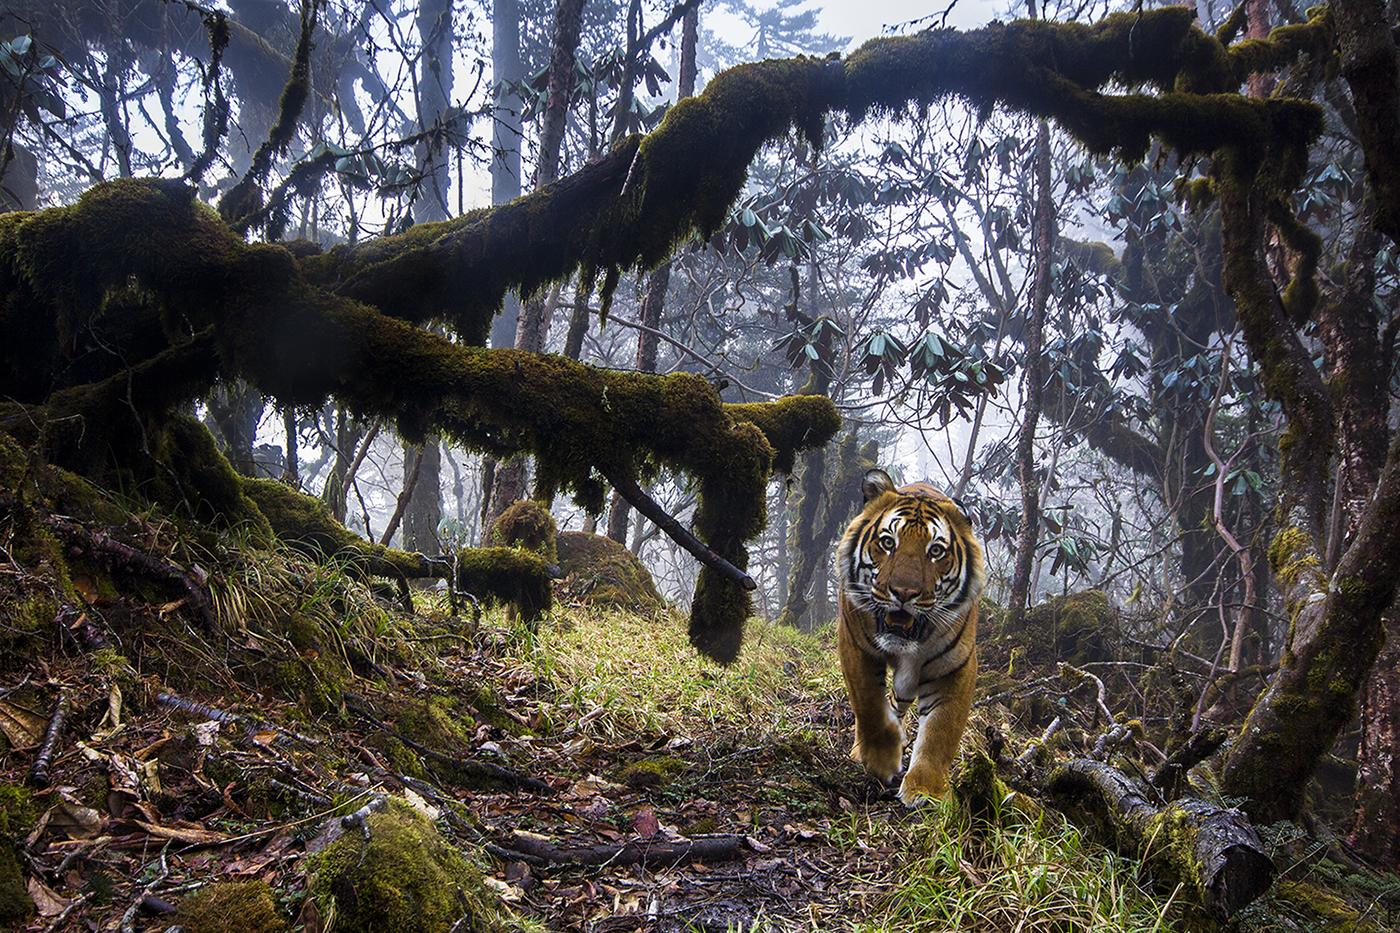 To capture this shot, photographer Emmanuel Rondeau set up eight triggered cameras in the Trongsa District of the Kingdom of Bhutan. Working with local rangers, he chose locations known to see tigers passing through. (© Emmanuel Rondeau, France)